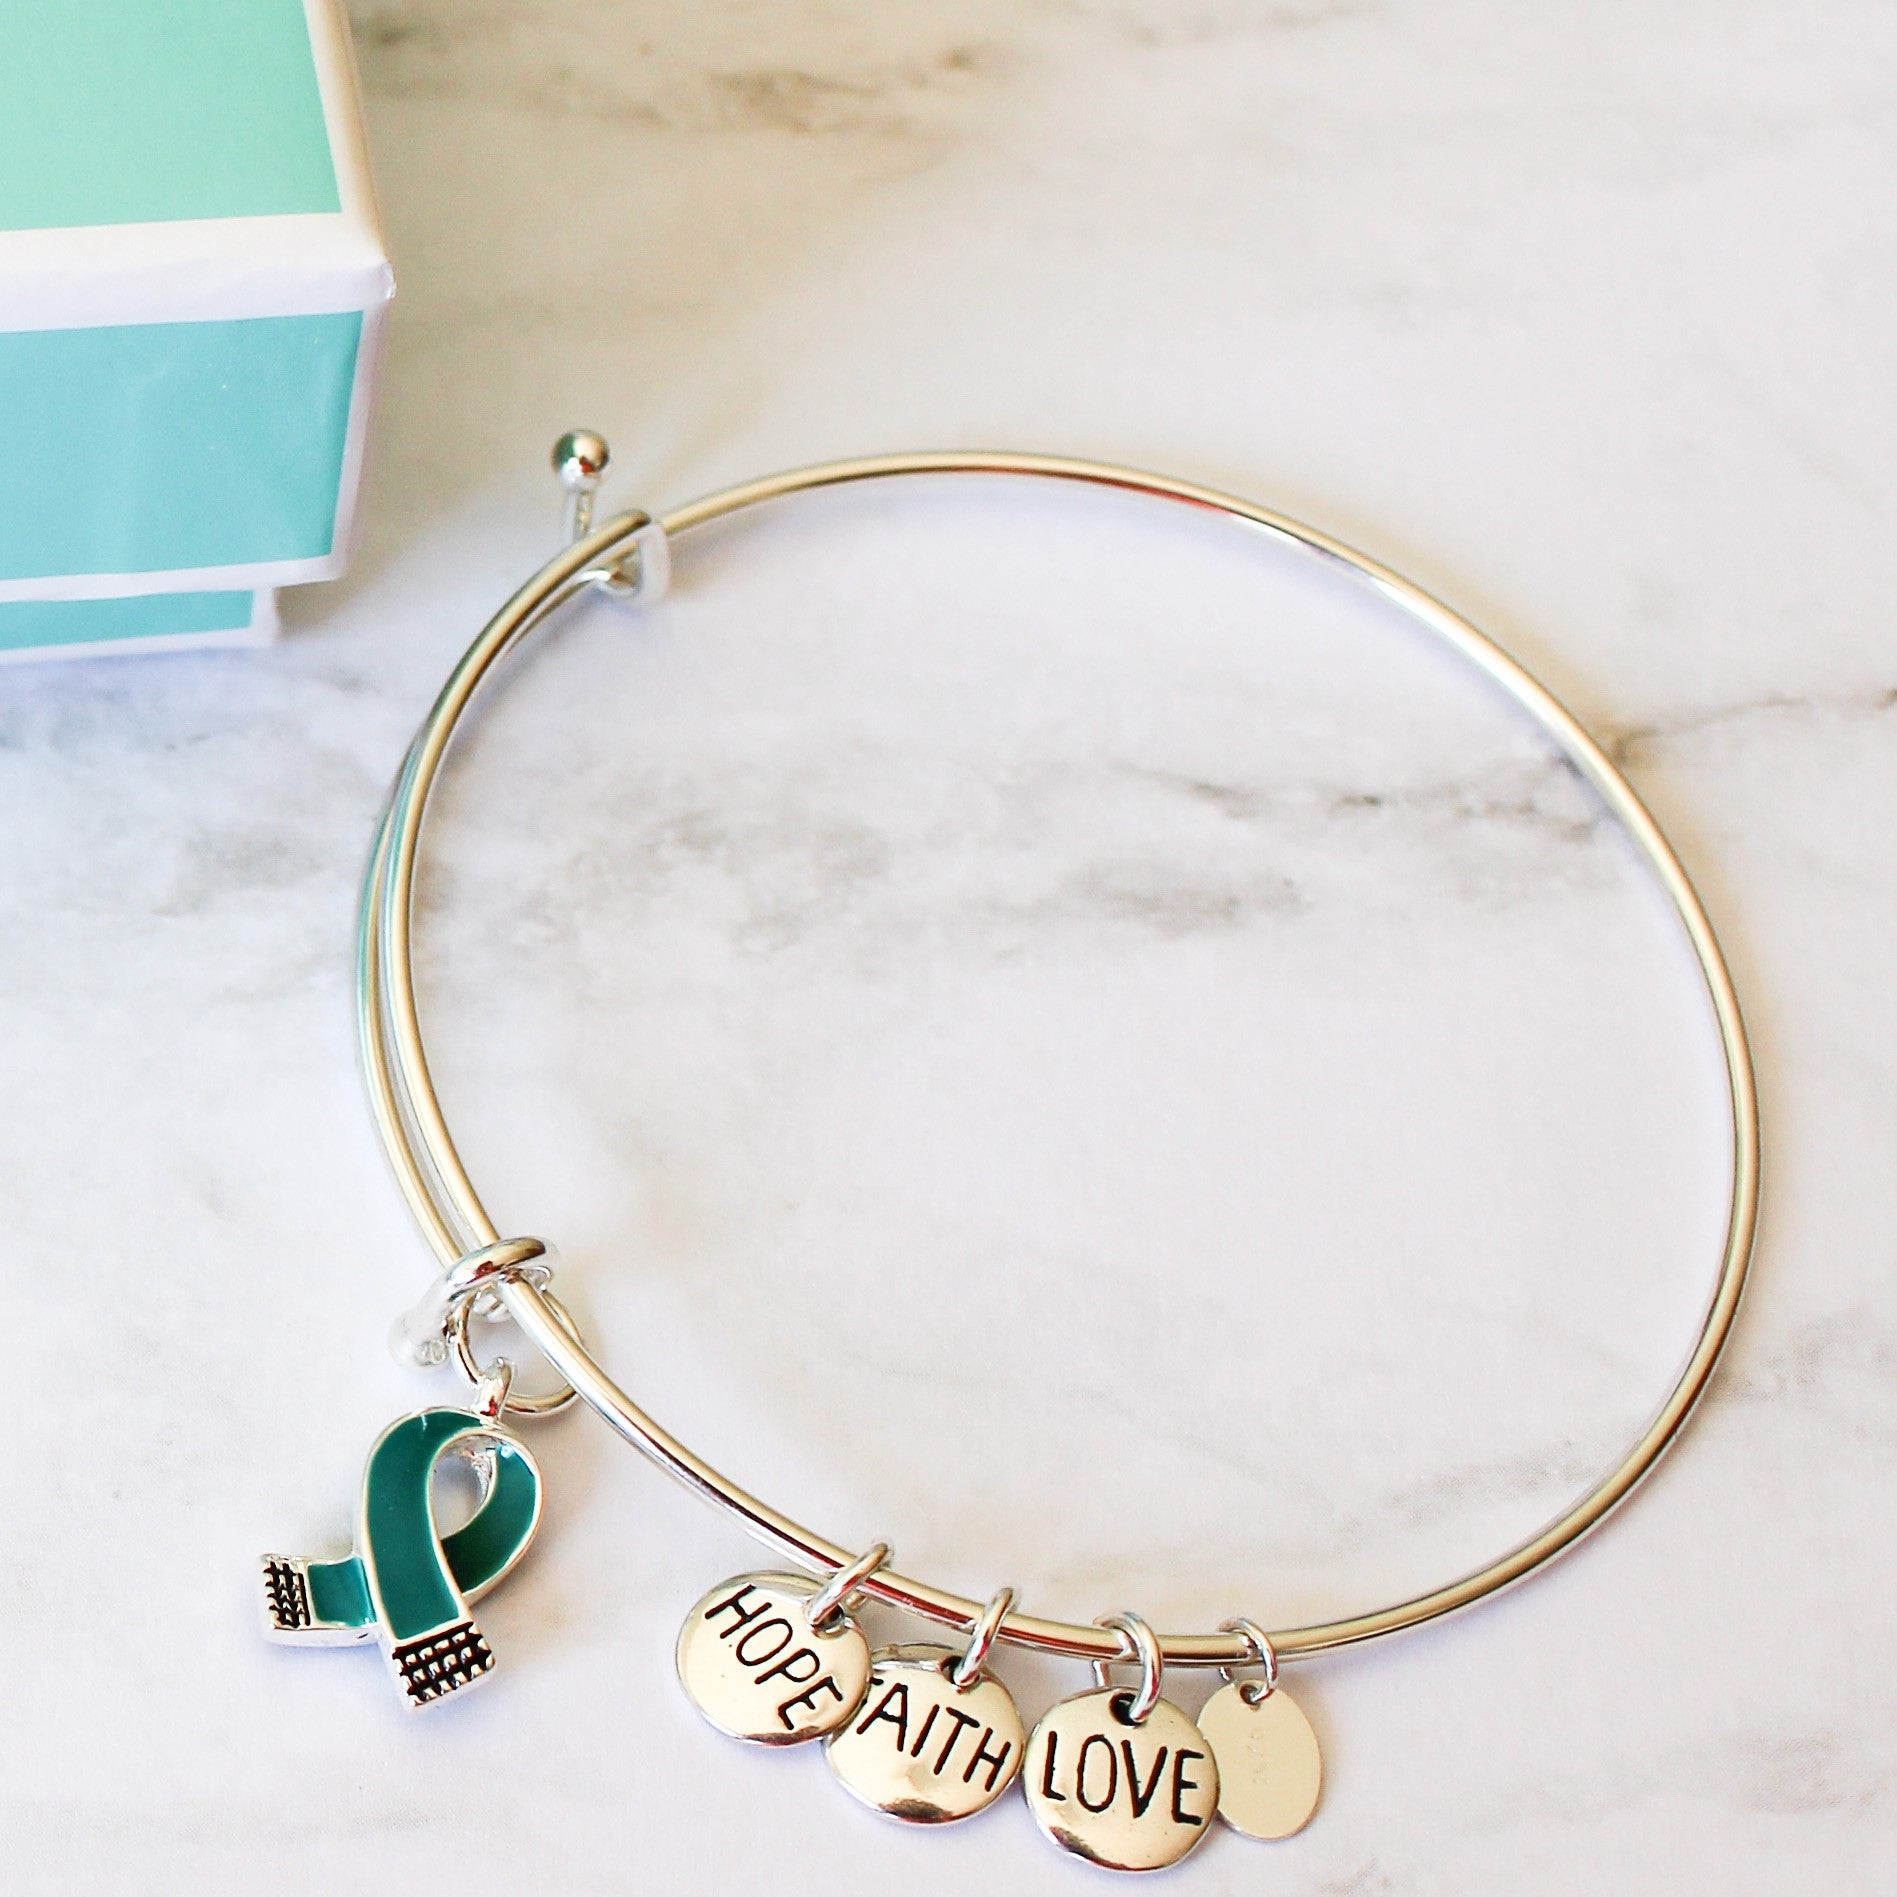 Sterling Silver Collection - Peyton Bangle With Teal Ribbon, Hope, Faith, Love Charms - Food Allergy Awareness